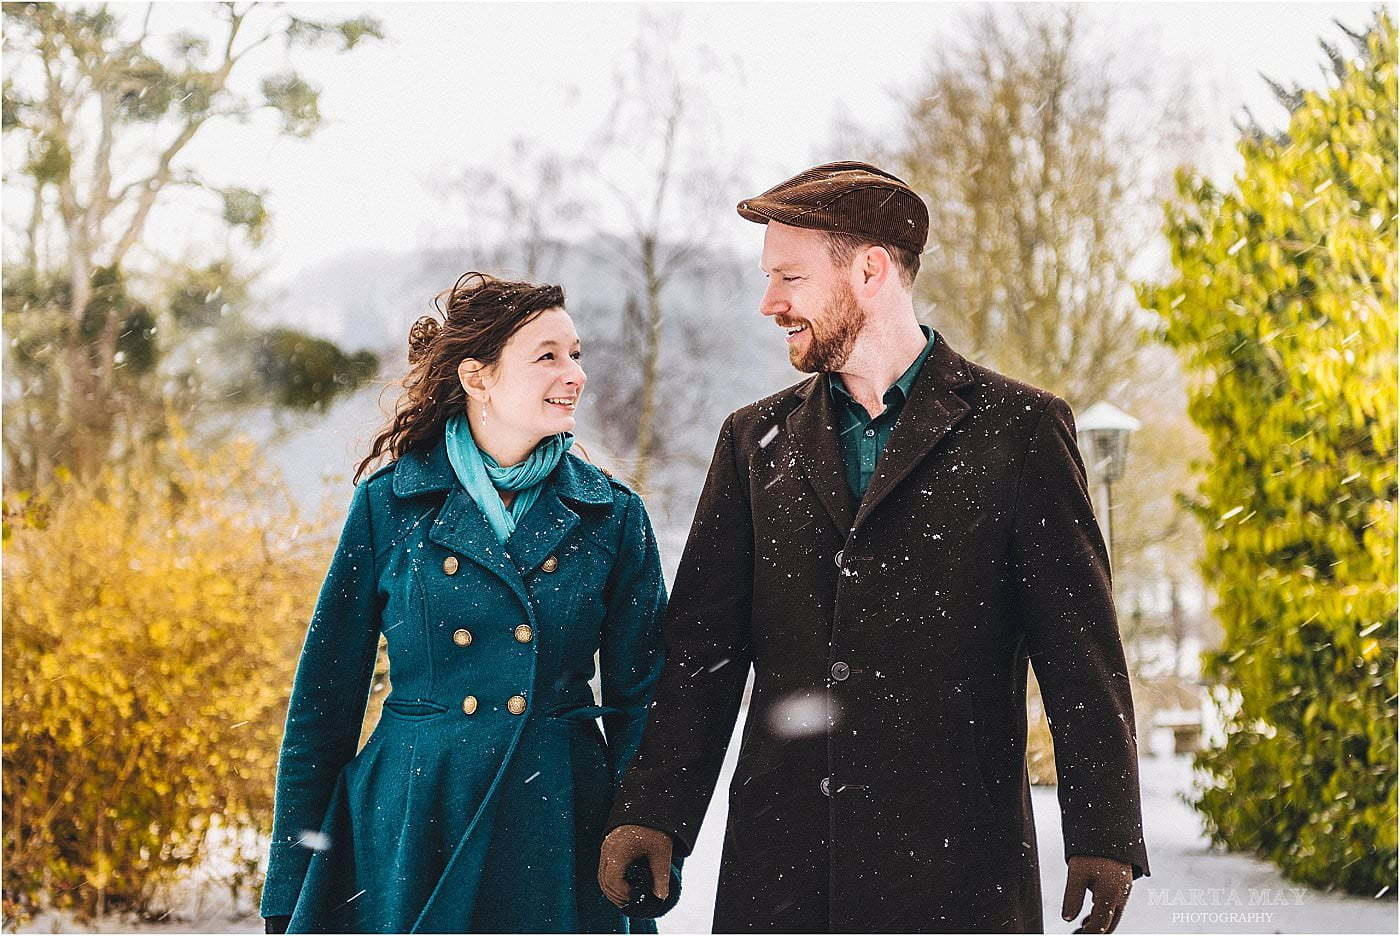 Herefordshire wedding, engagement shoot